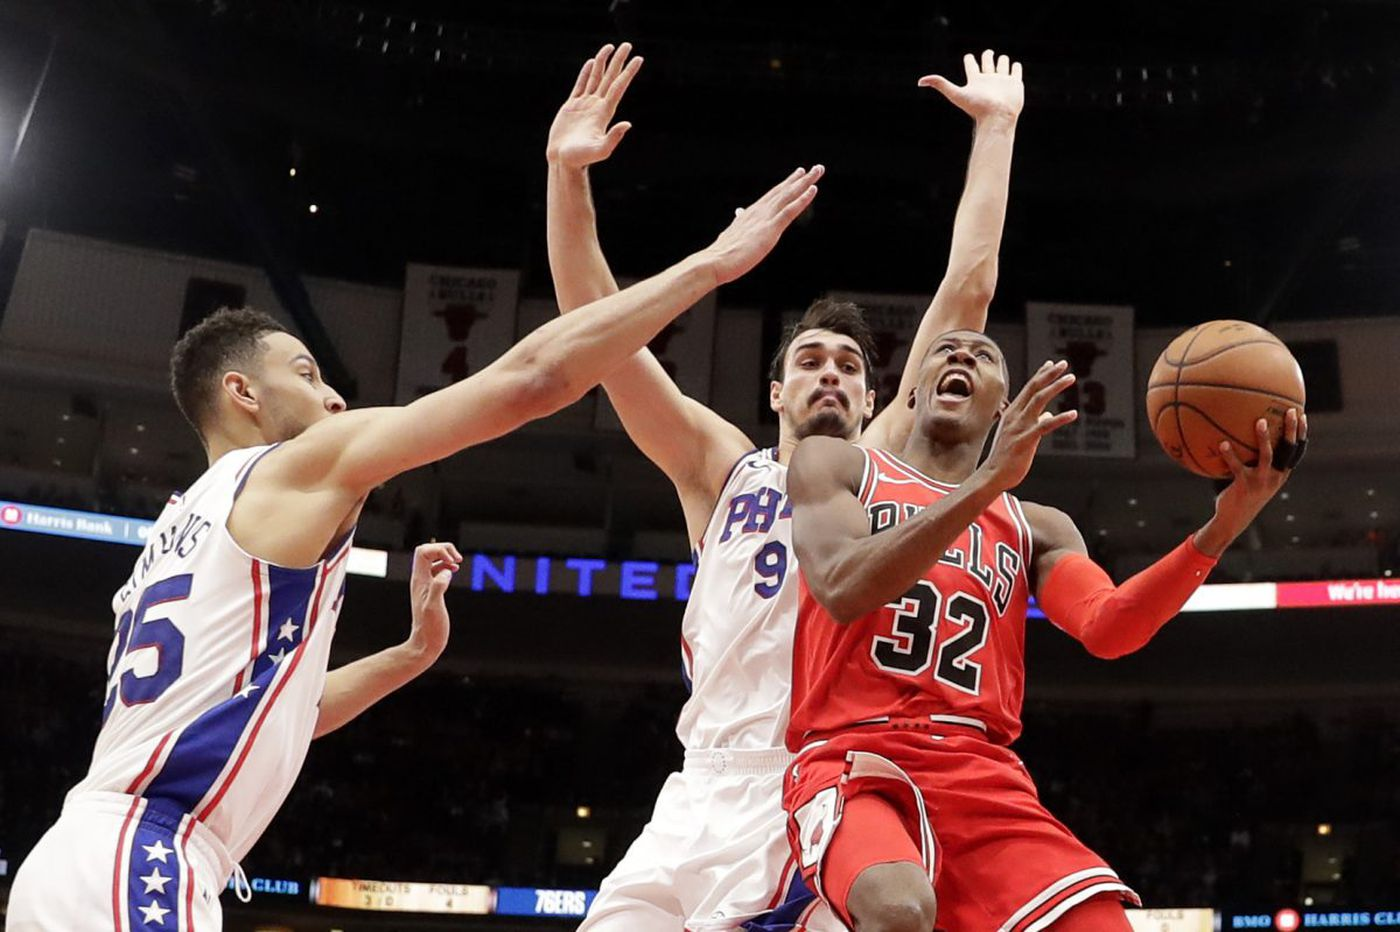 Joel Embiid, defense will be key for Sixers against Bulls